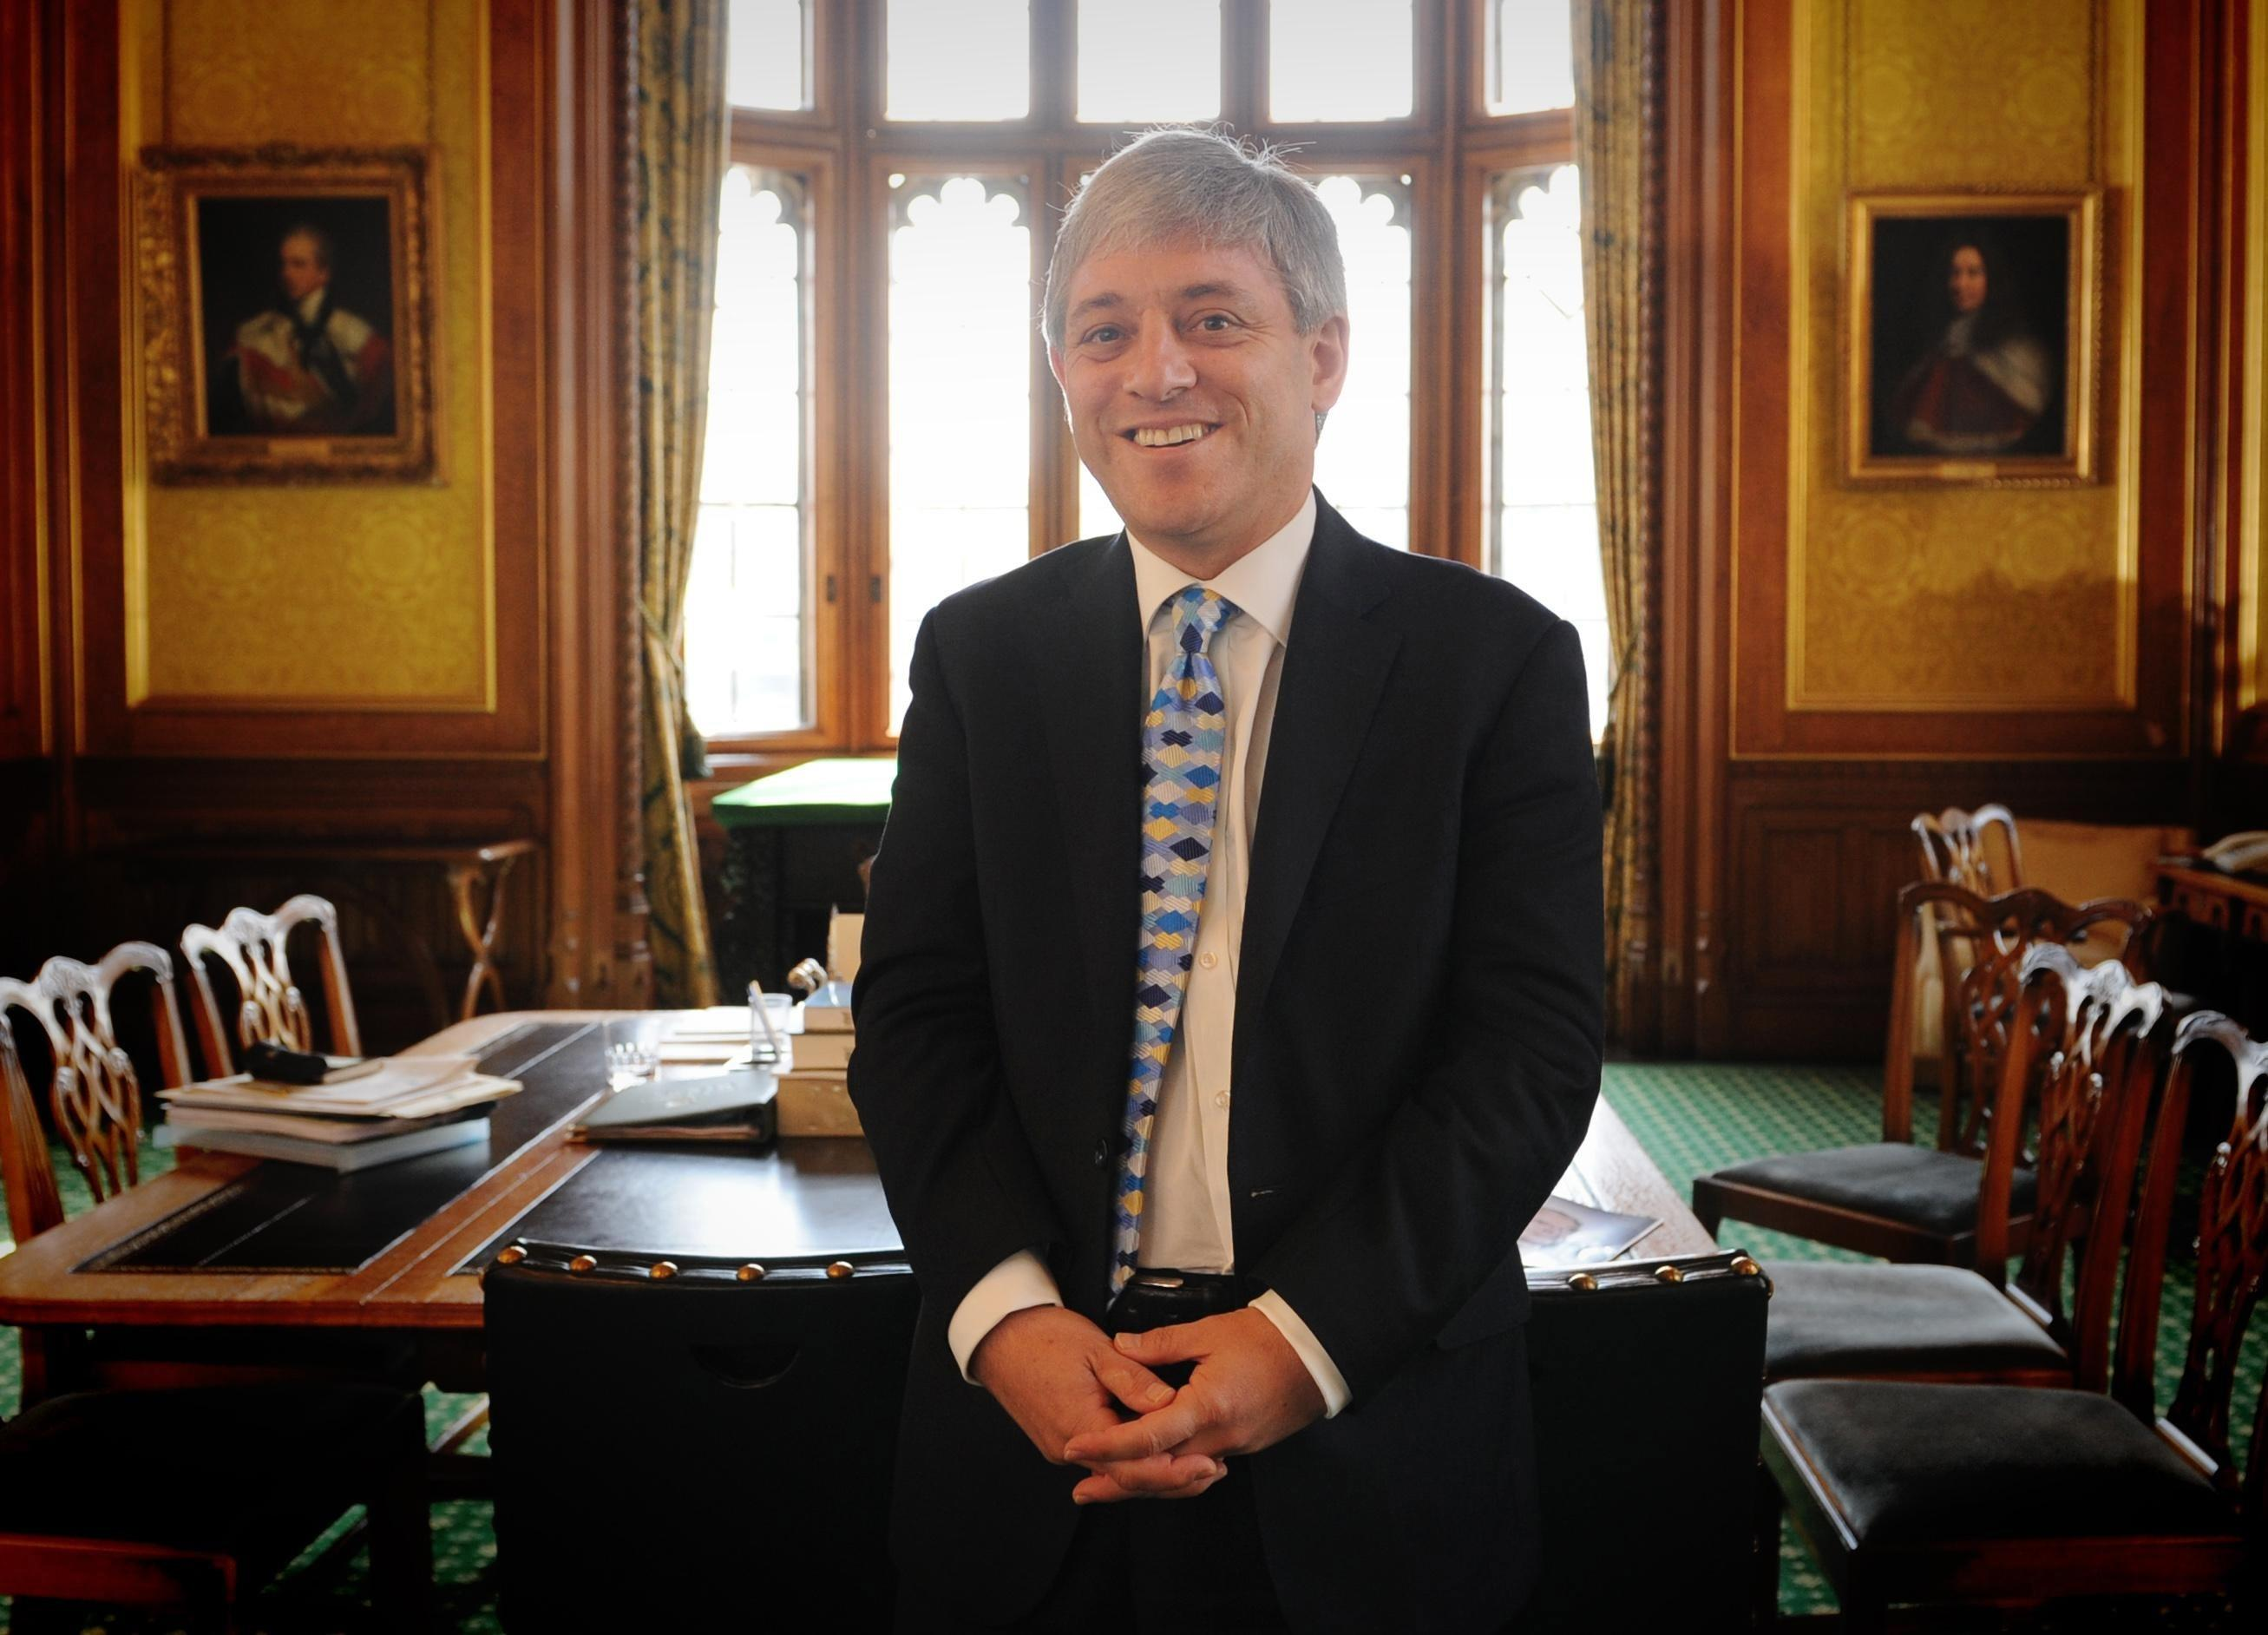 Decade on the job: Speaker Bercow in 2009 after landing the role. (PA)